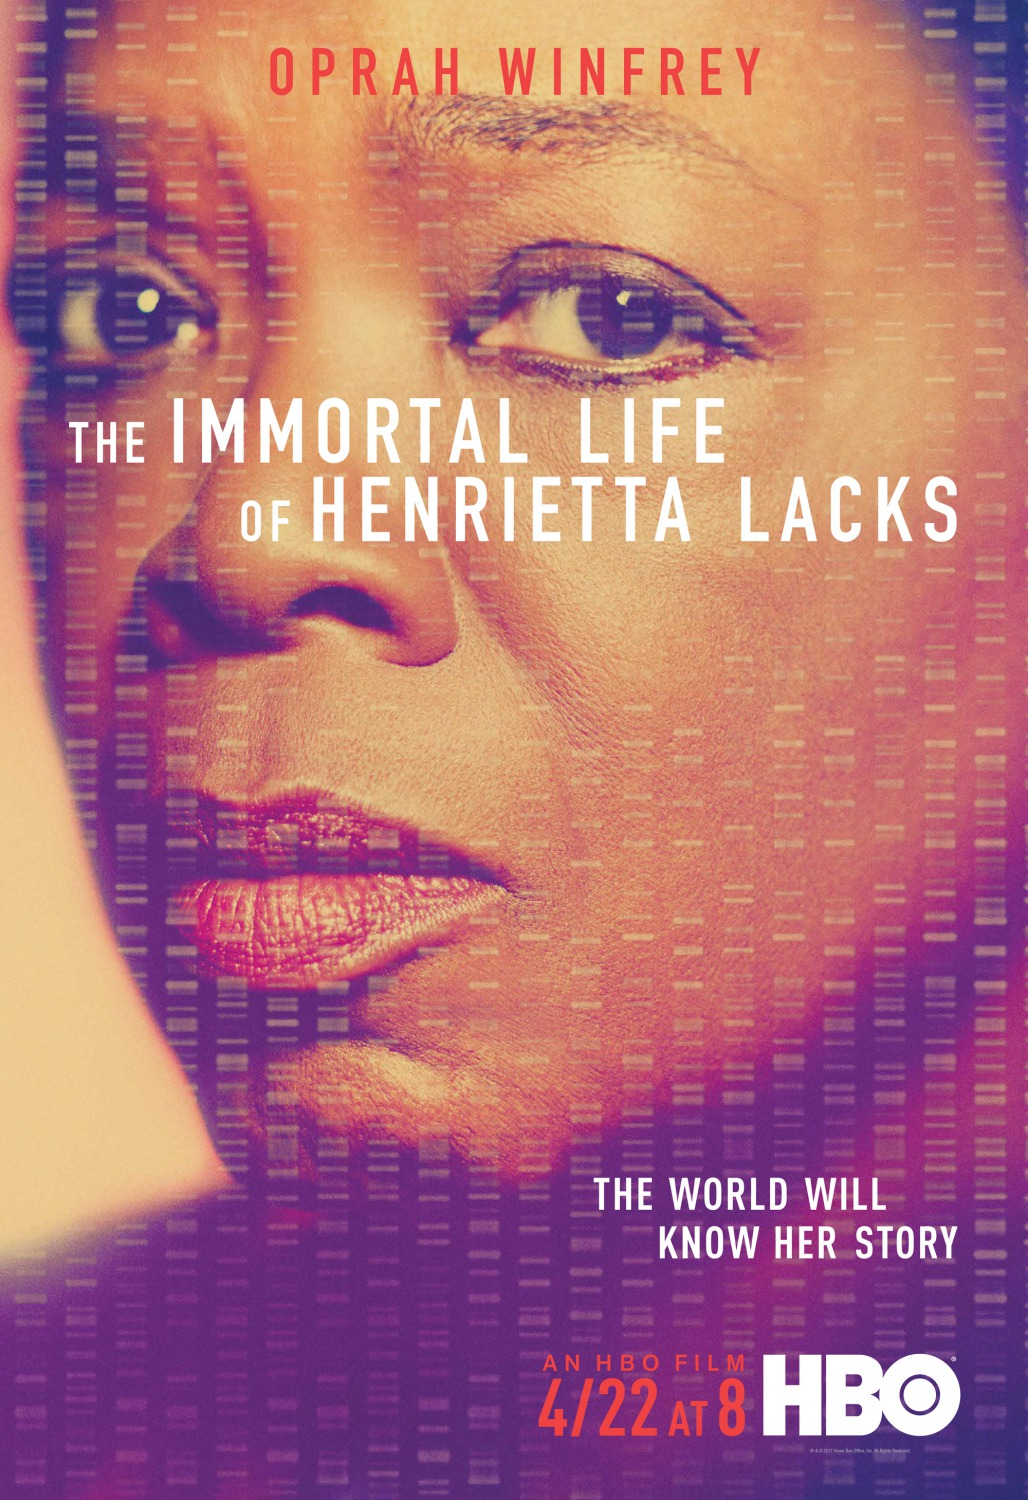 henrietta lacks Veronica spencer holds a photo of her great-grandmother henrietta lacks whose cancer cells helped revolutionize medicine and whose life is the subject of a best-selling book and upcoming oprah .